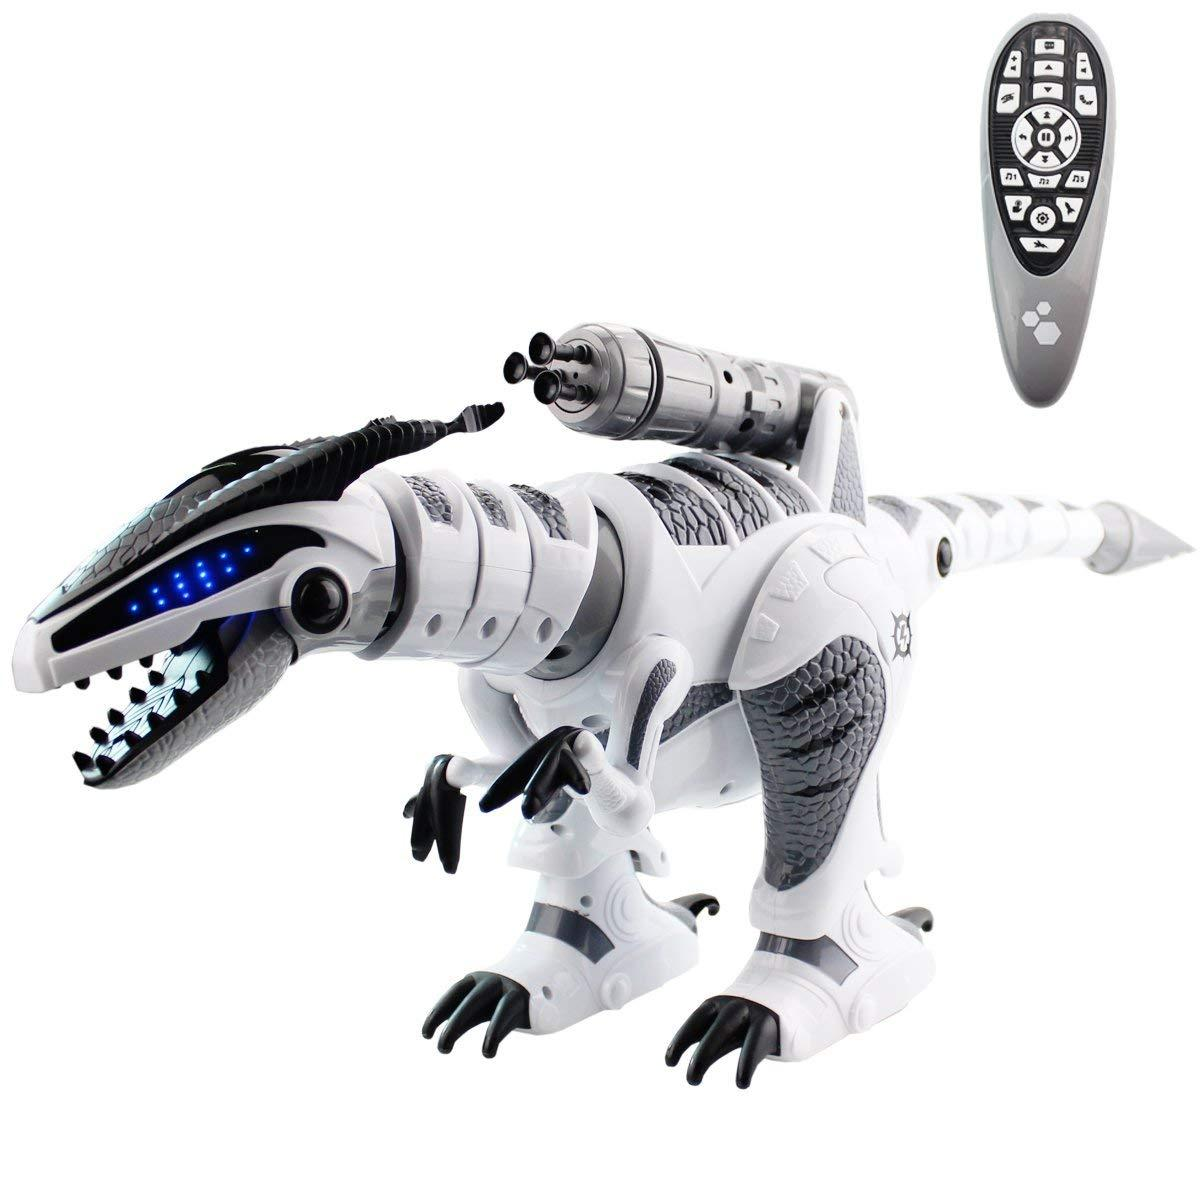 RC Dinosaur  Zooawa, Rechargeable Intelligent Dragon - Remote Control Toy For Kids